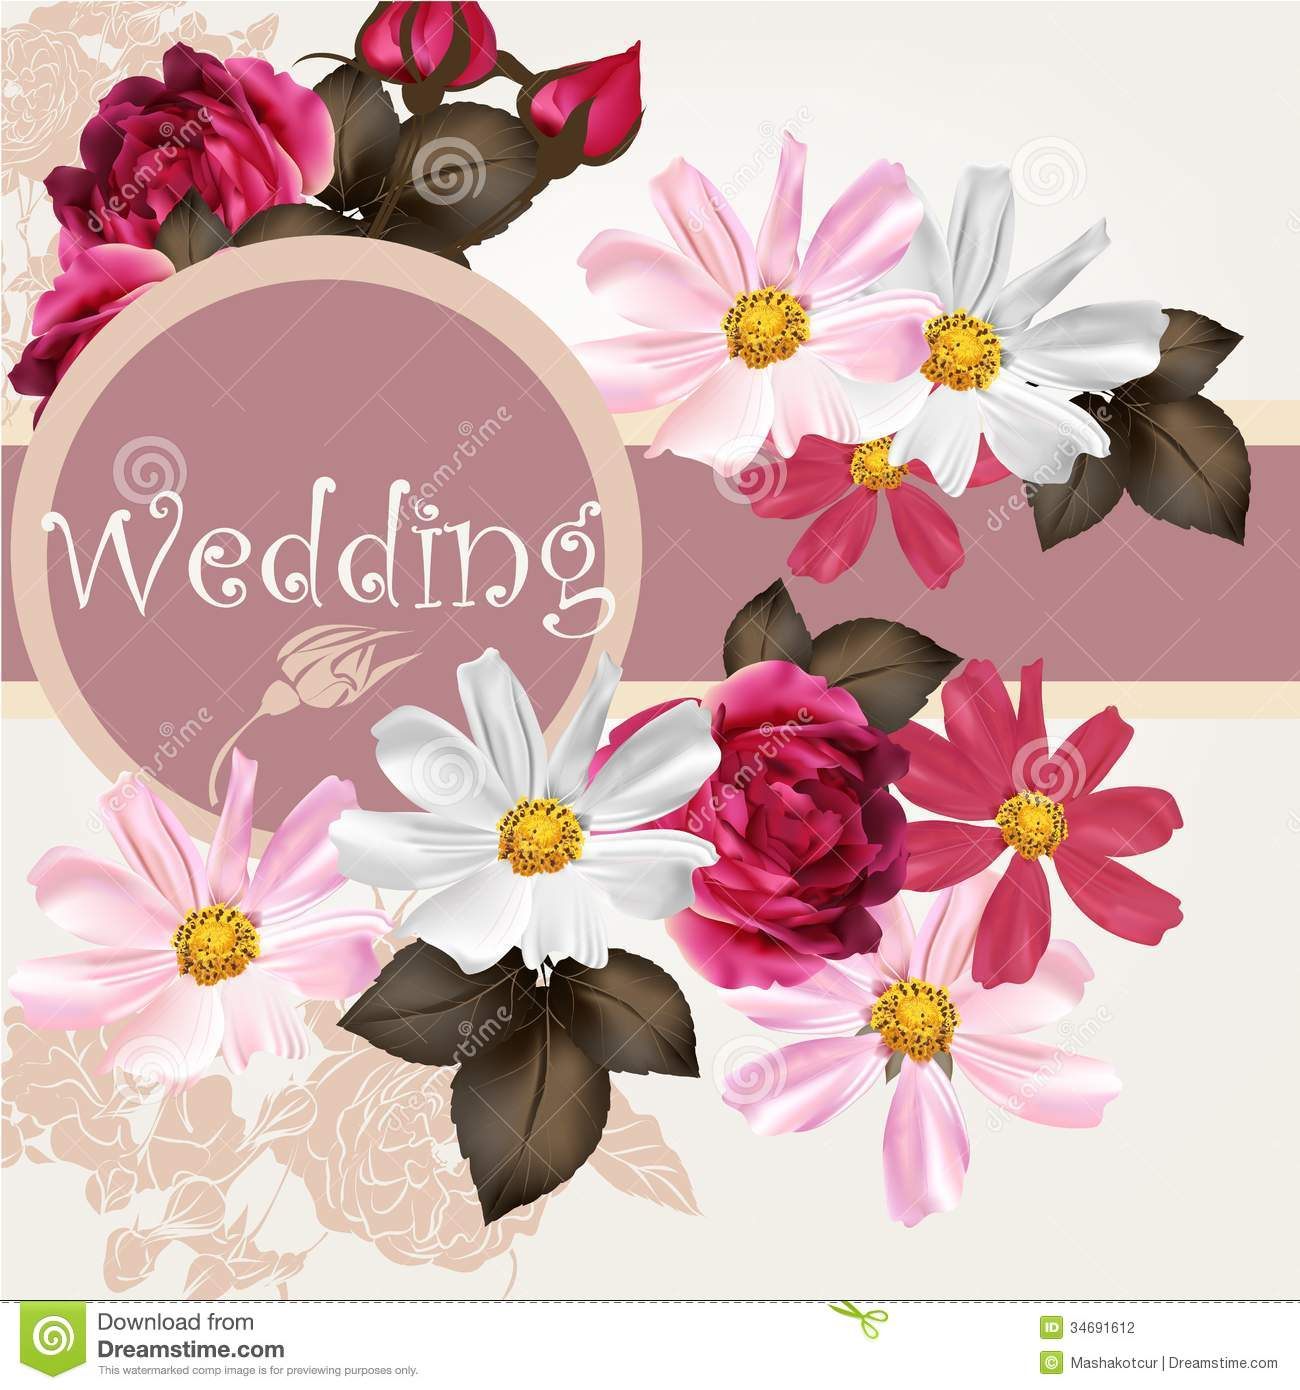 Wedding flowers wedding invitations greeting cards gifts flowers wedding invitations greeting cards gifts flowers kristyandbryce Image collections